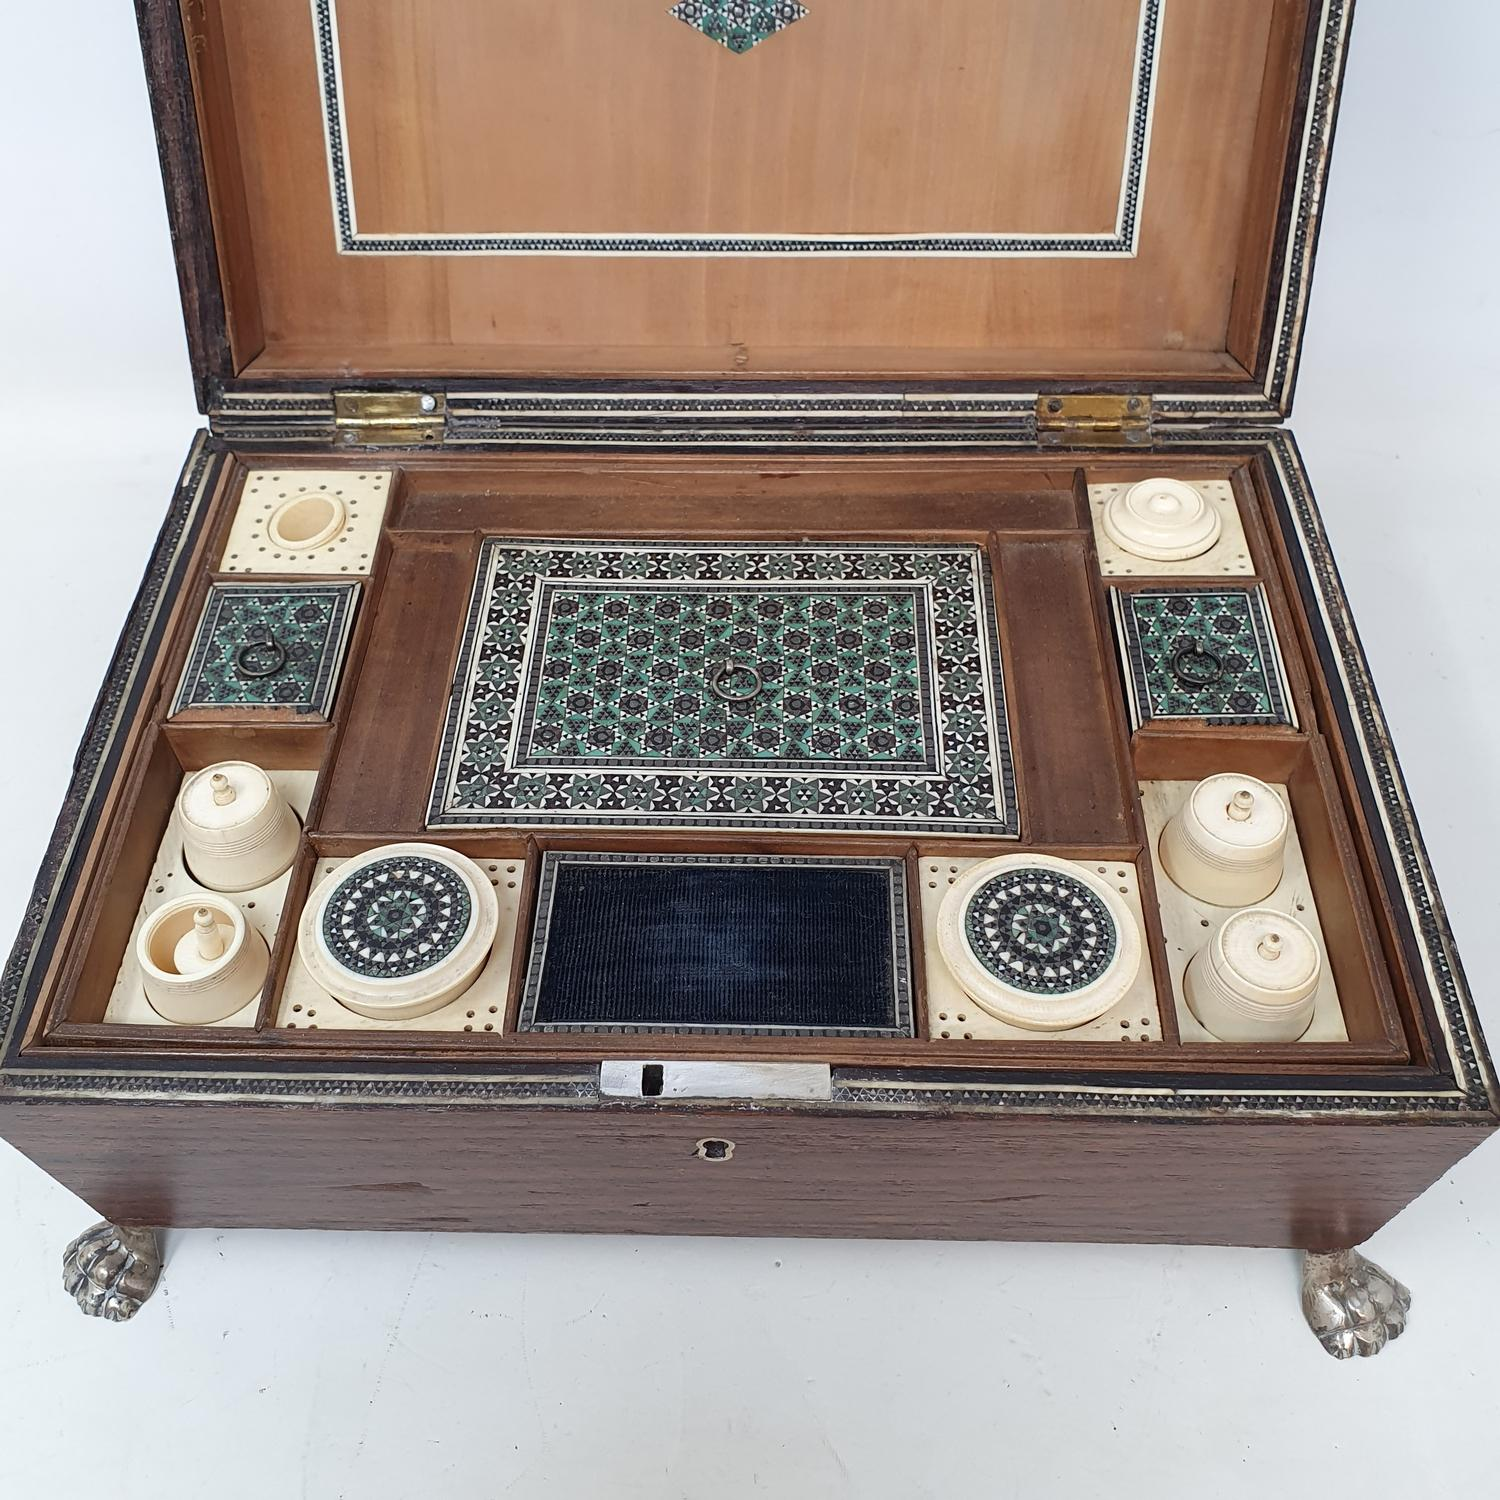 A 19th century rosewood sewing box,the fitted interior with various bone compartments, 26 cm wide - Image 2 of 4